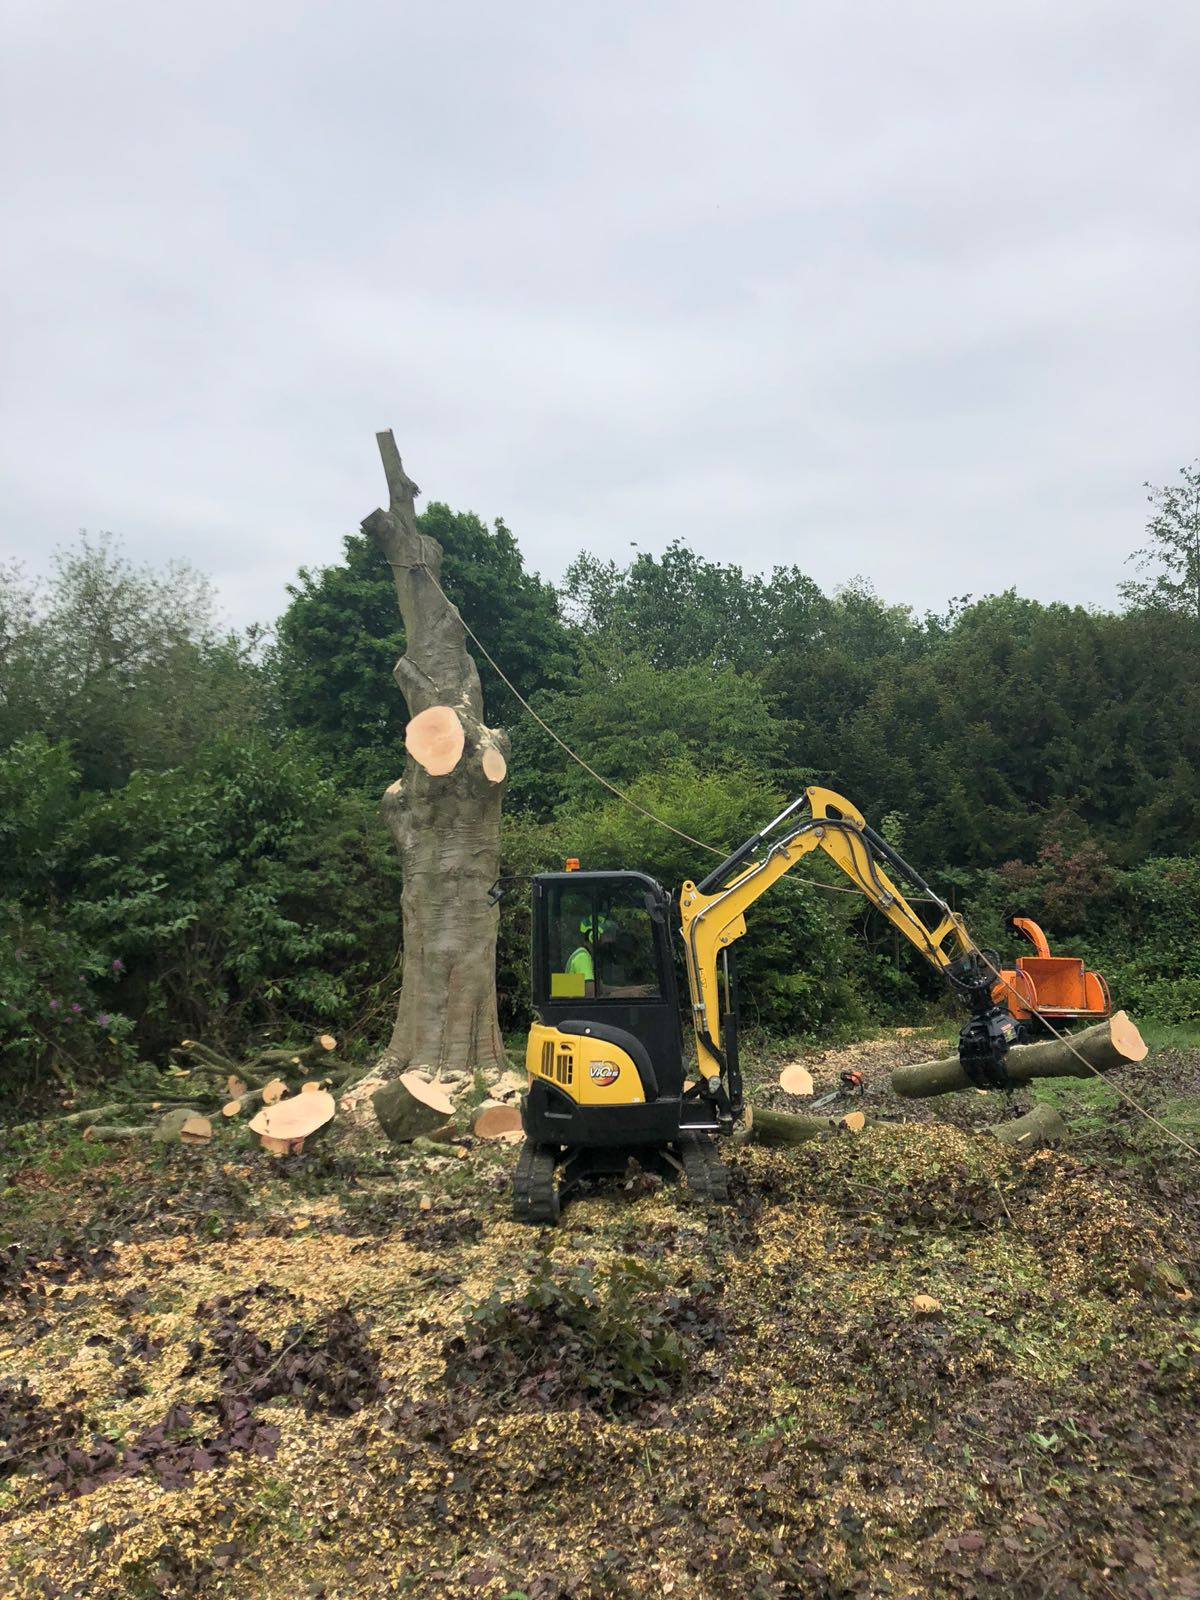 Do you need tree felling services? Here are the signs your tree needs removing. Includes overgrown trees too close to properties, dangerous trees & diseased trees. Get free advice & a quote from an expert tree surgeon.